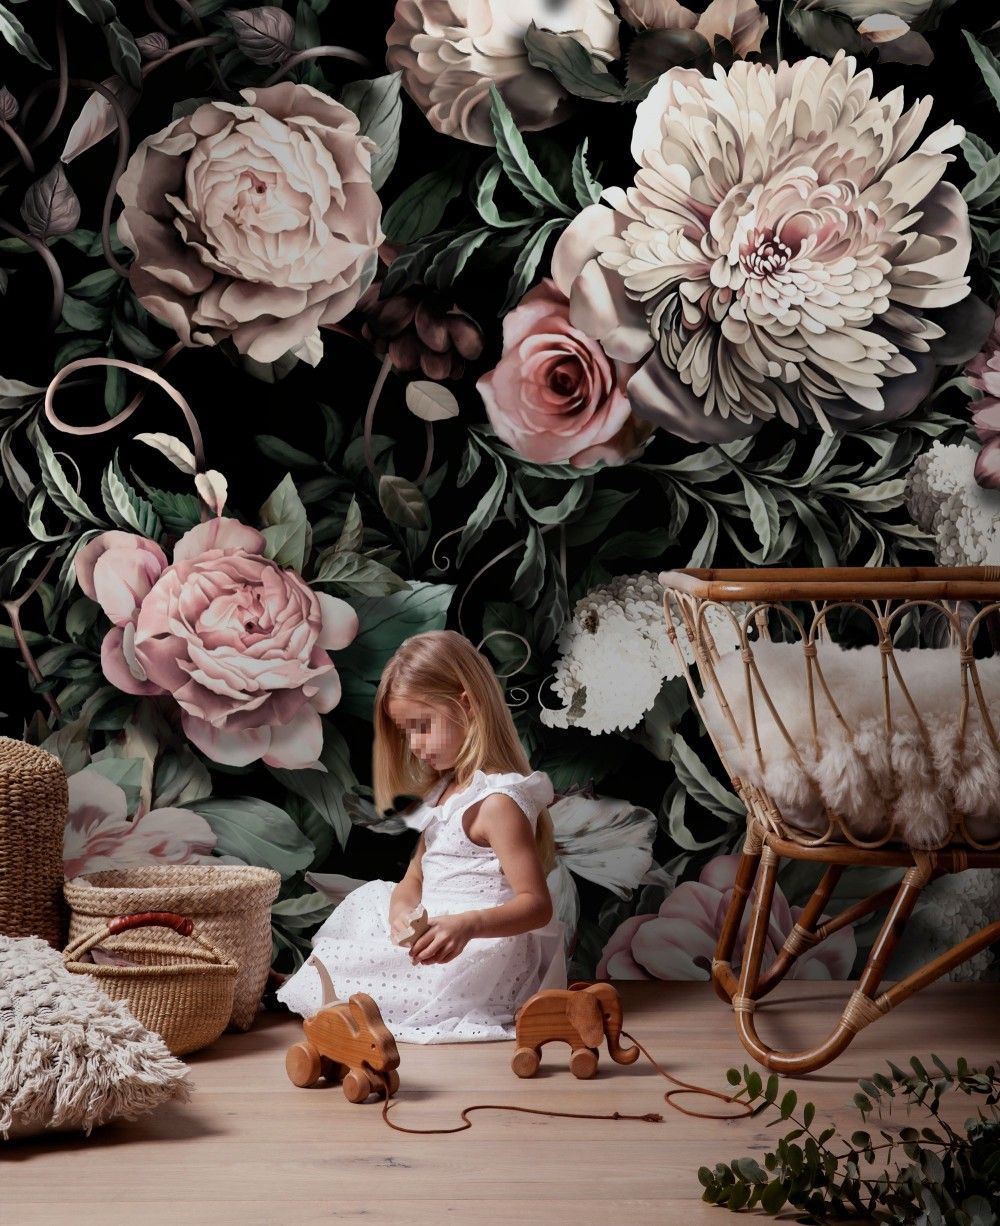 Dark Dutch Floral Wallpaper Mural in 2020 Floral